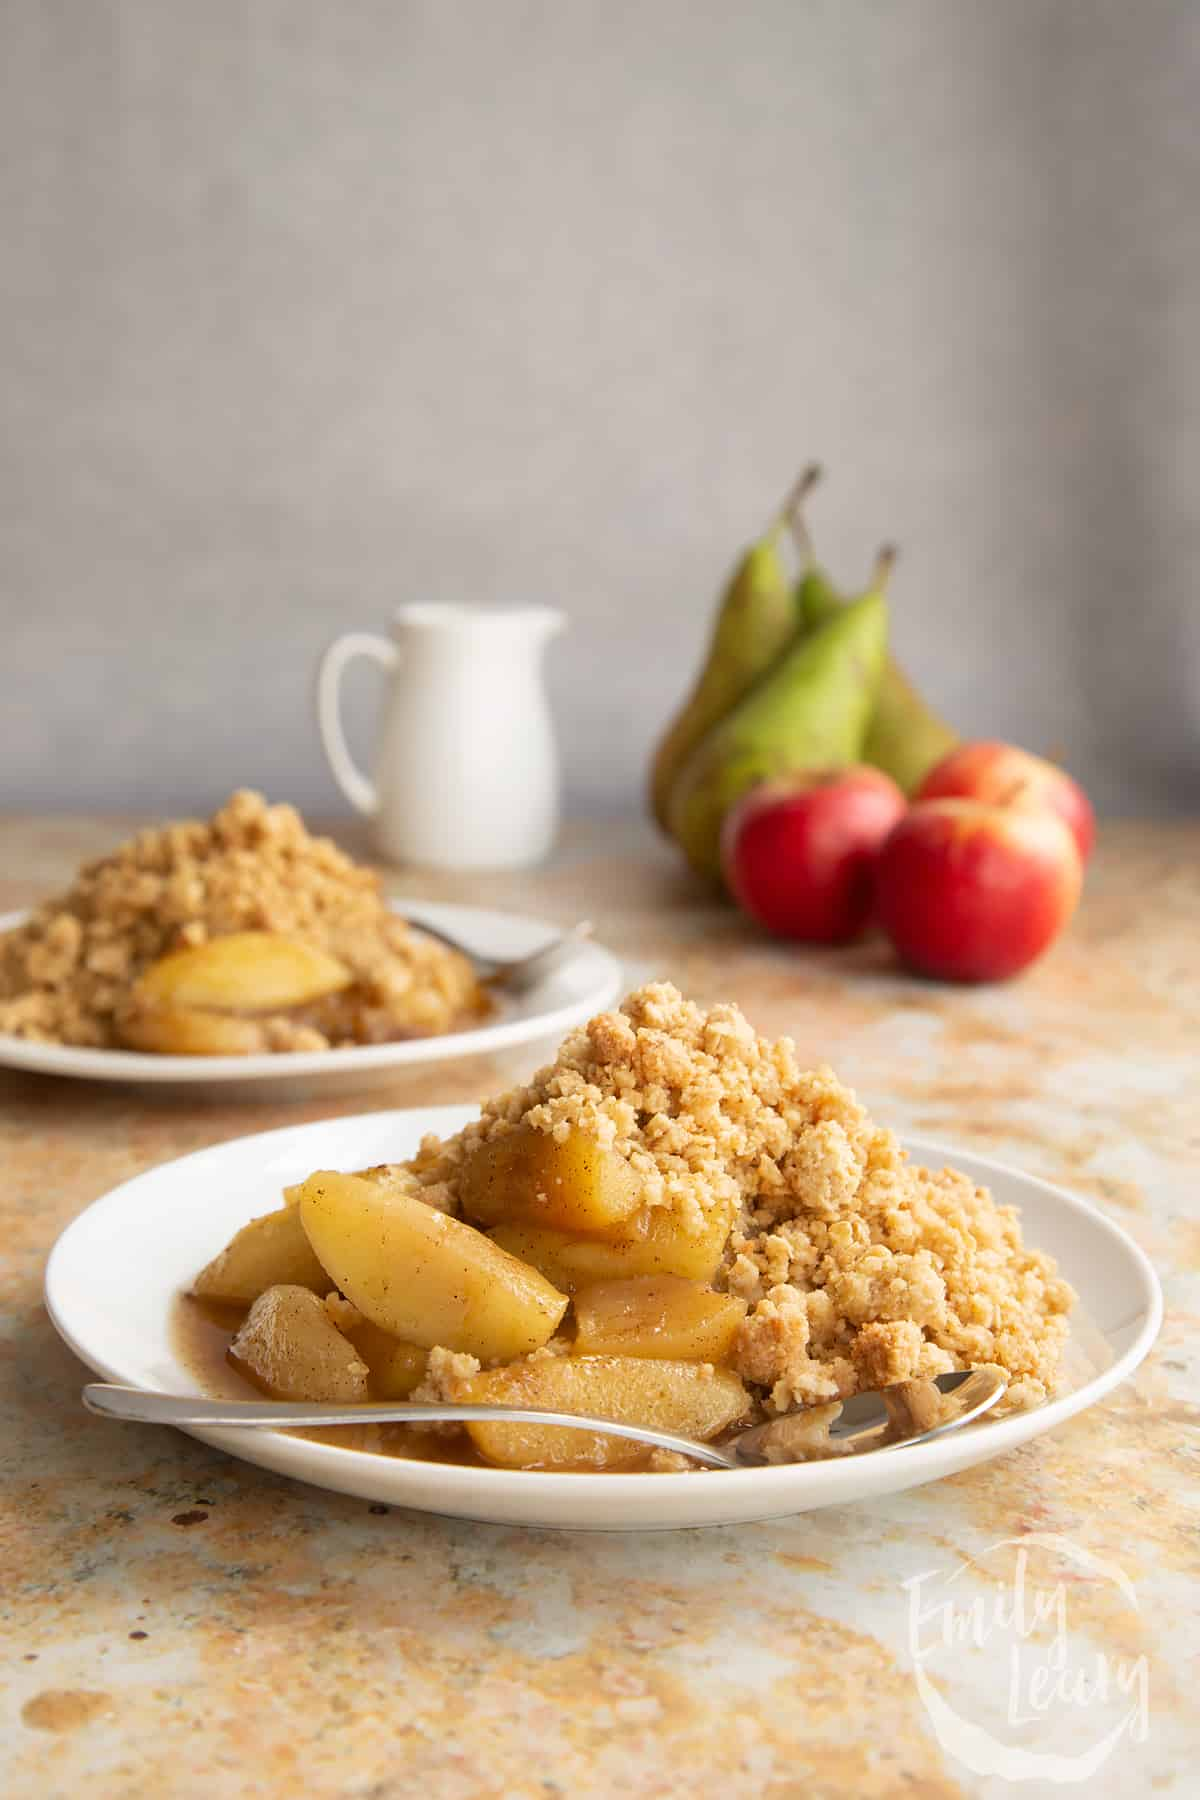 Apple pear crumble served to a small white plate with a small spoon.